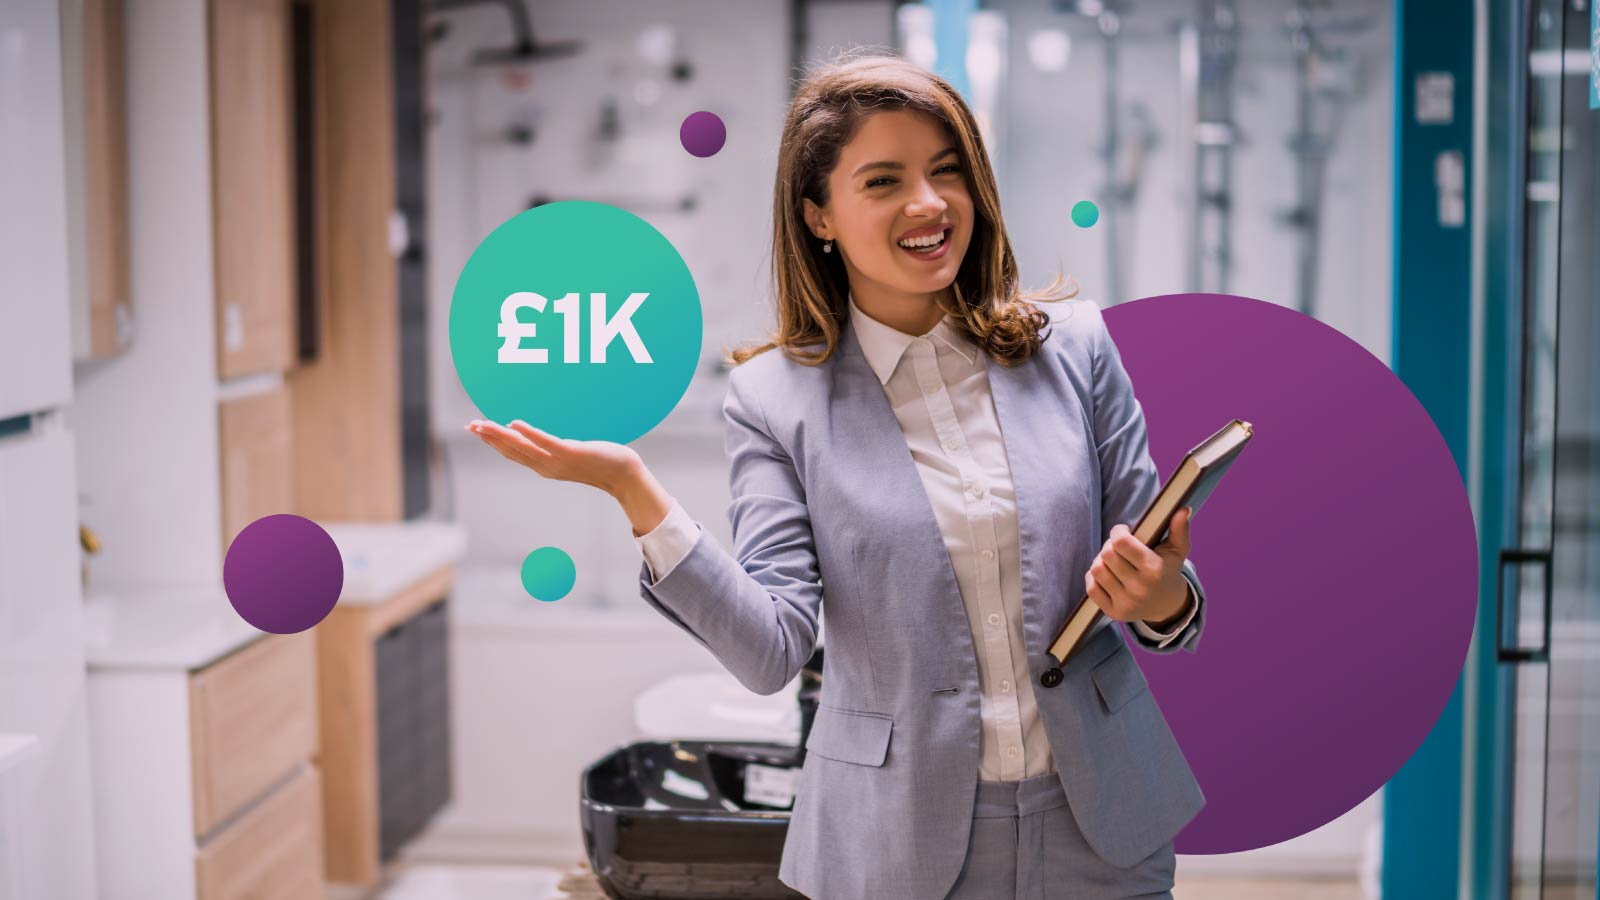 Business owner smiling while holding the £1K graphic campaign branding.